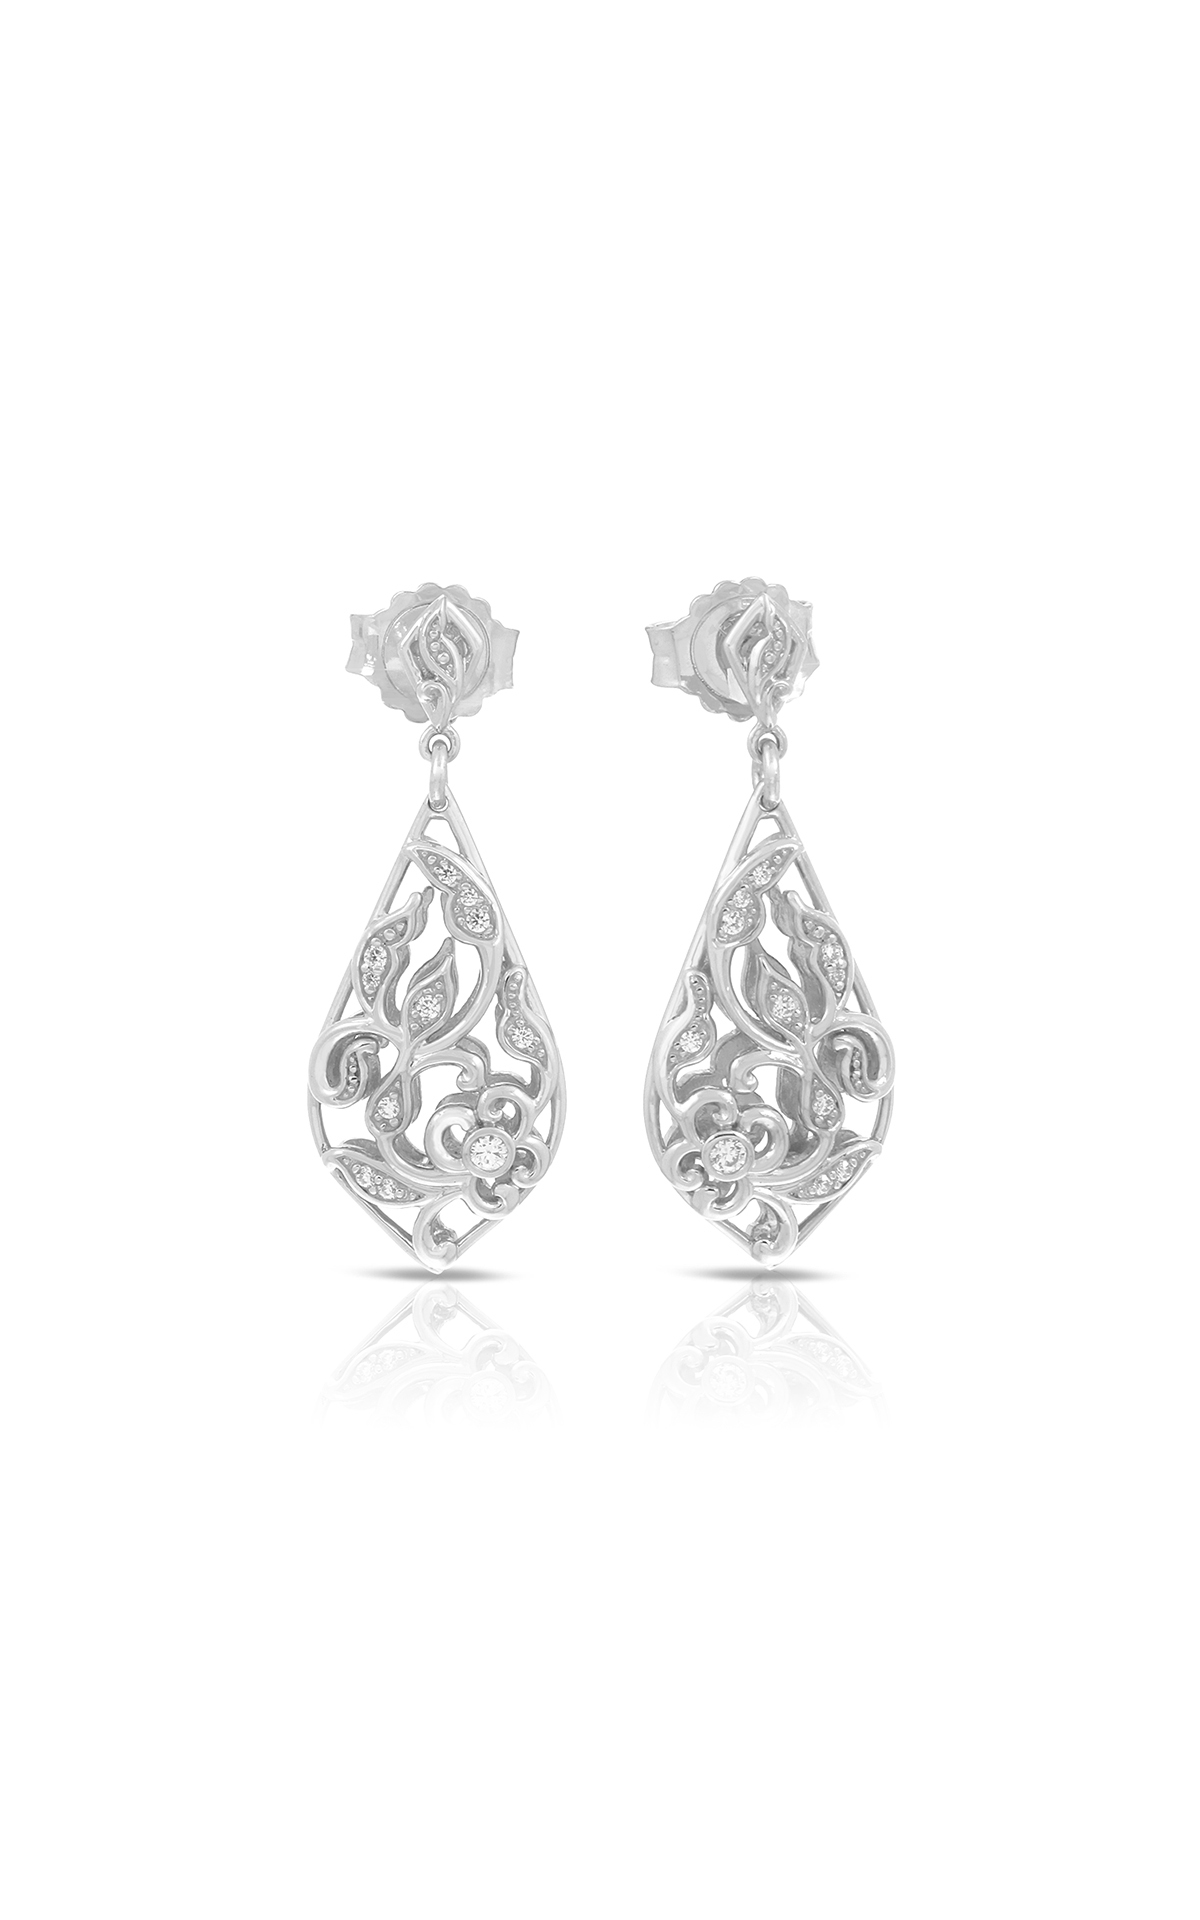 Belle Etoile Color Stone Empress Silver Earrings 3011620501 product image